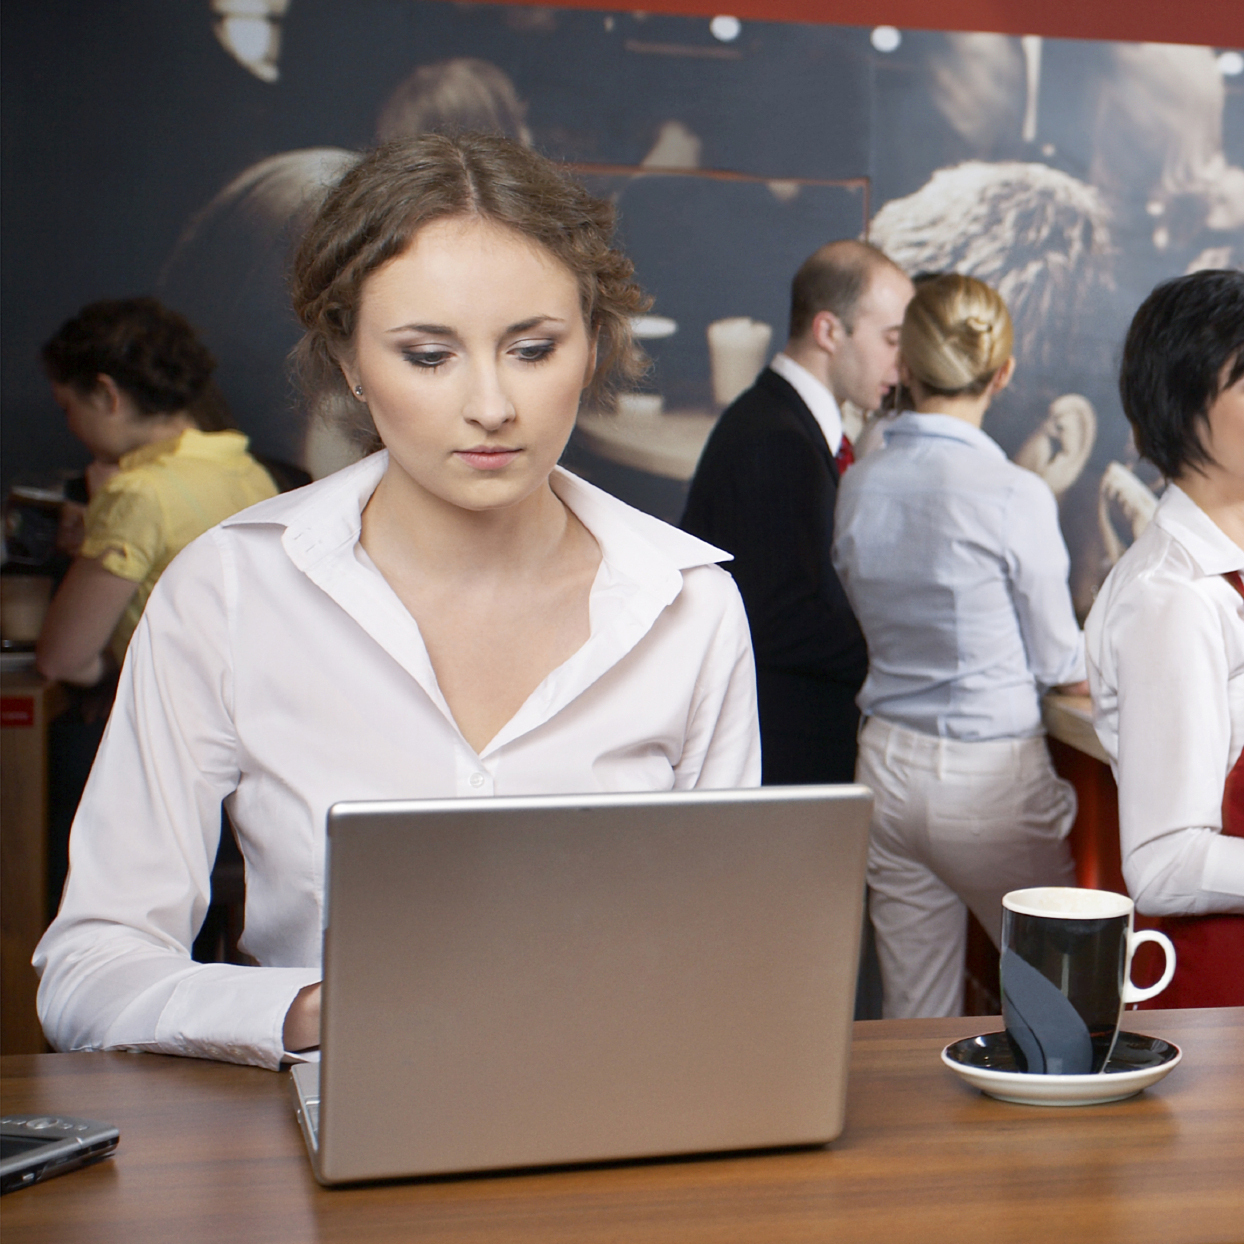 woman working on a computer in a restaurant